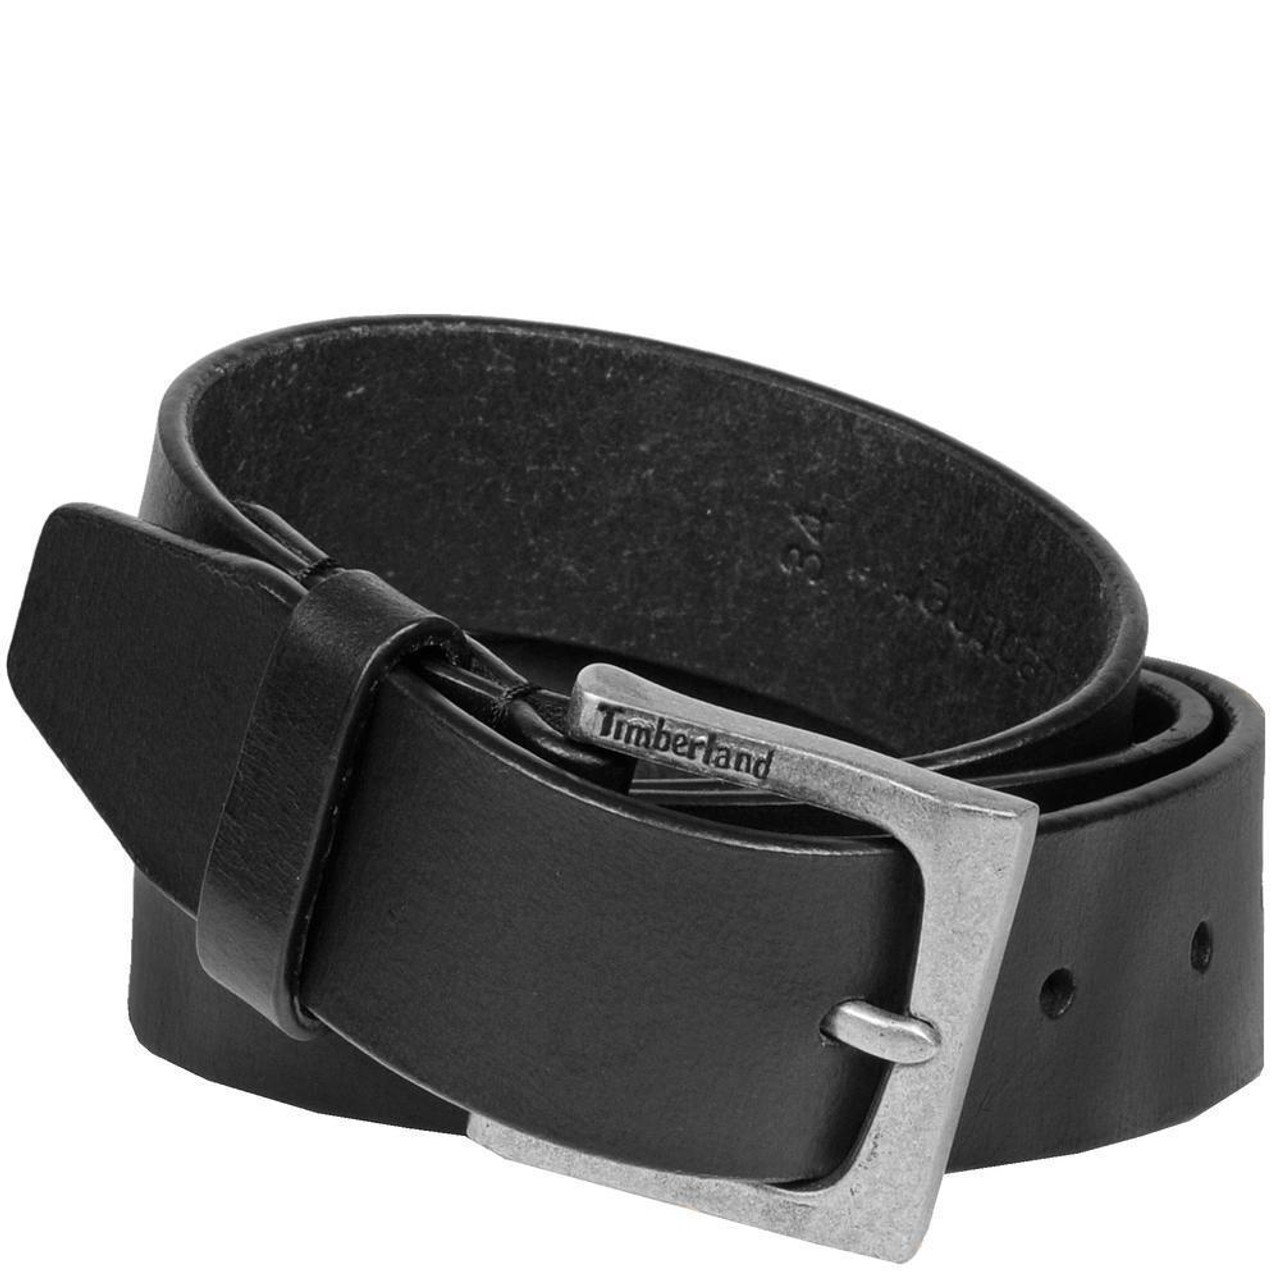 Timberland Mm Classic Jeans Genuine Leather Urban Casual Black Belt B  Fearless Apparel